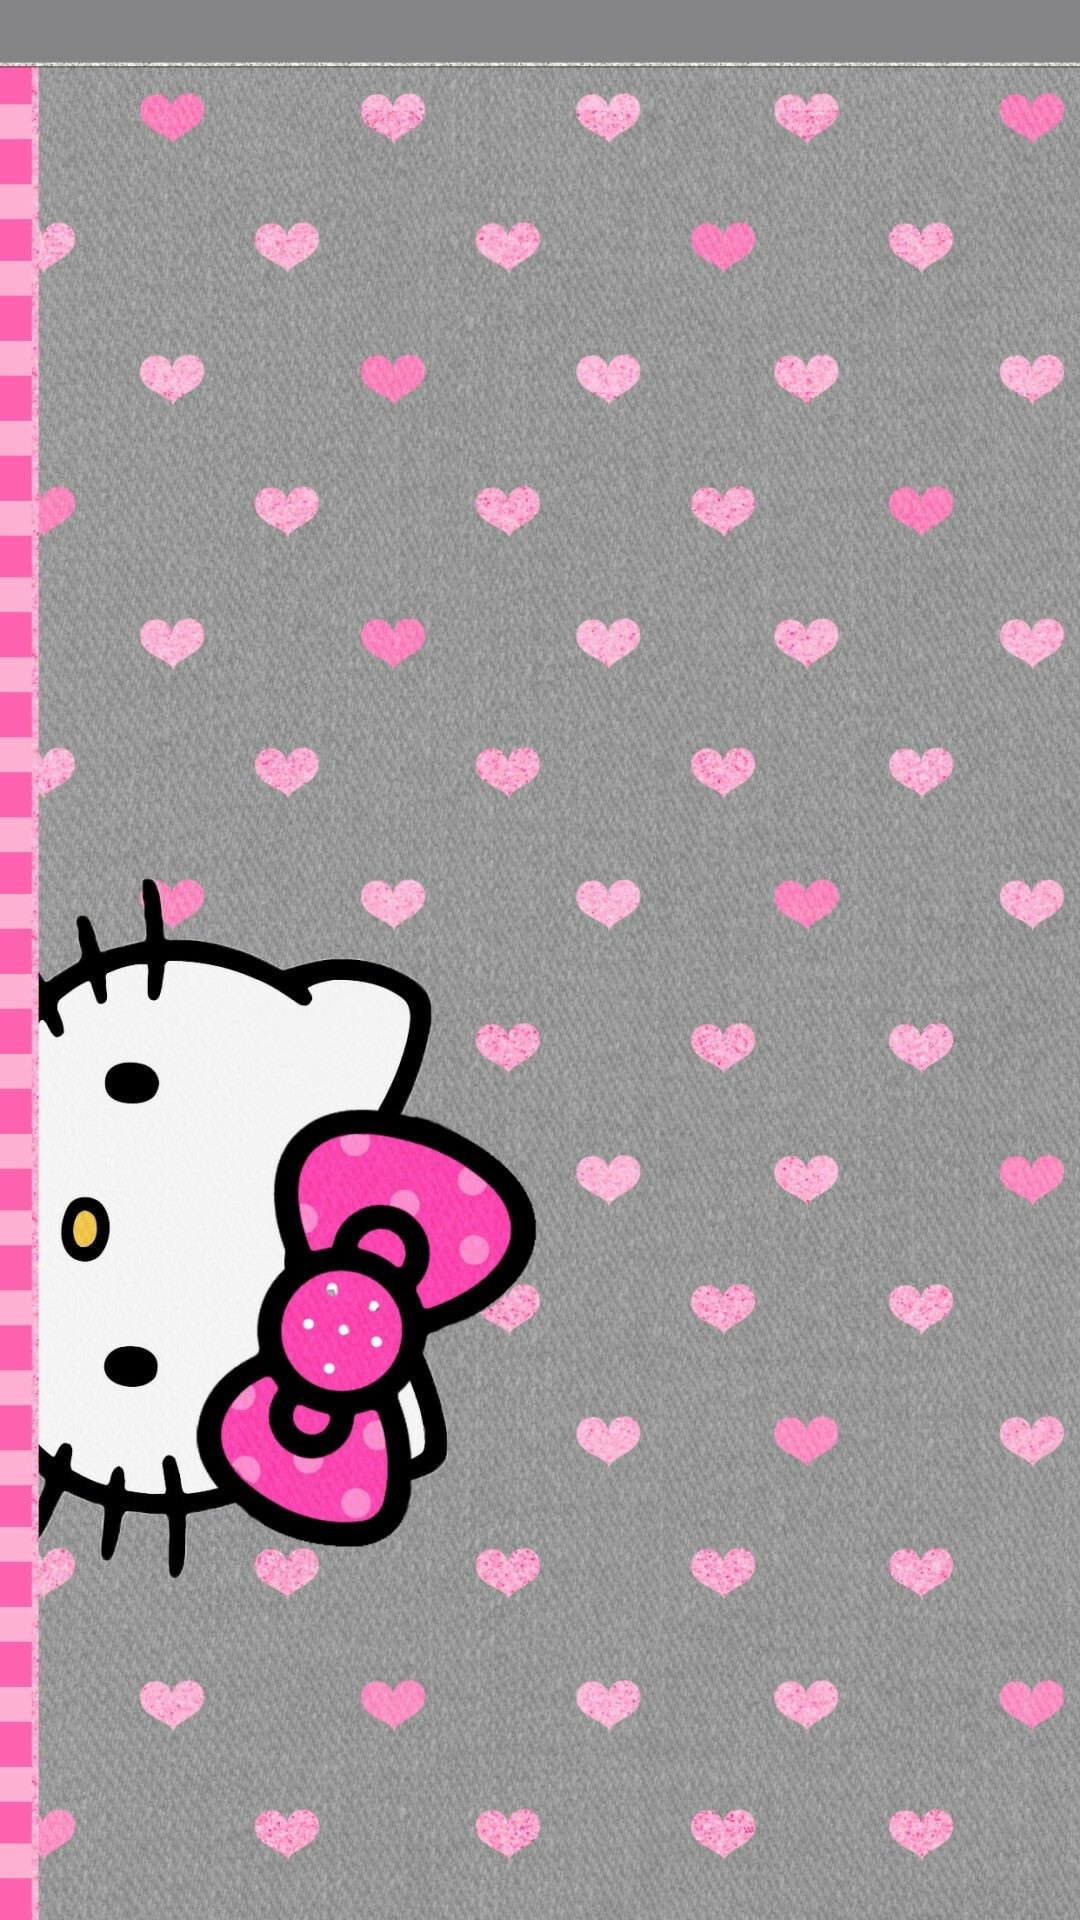 1080x1920 IPhone Hello Kitty Wallpapers Group 56